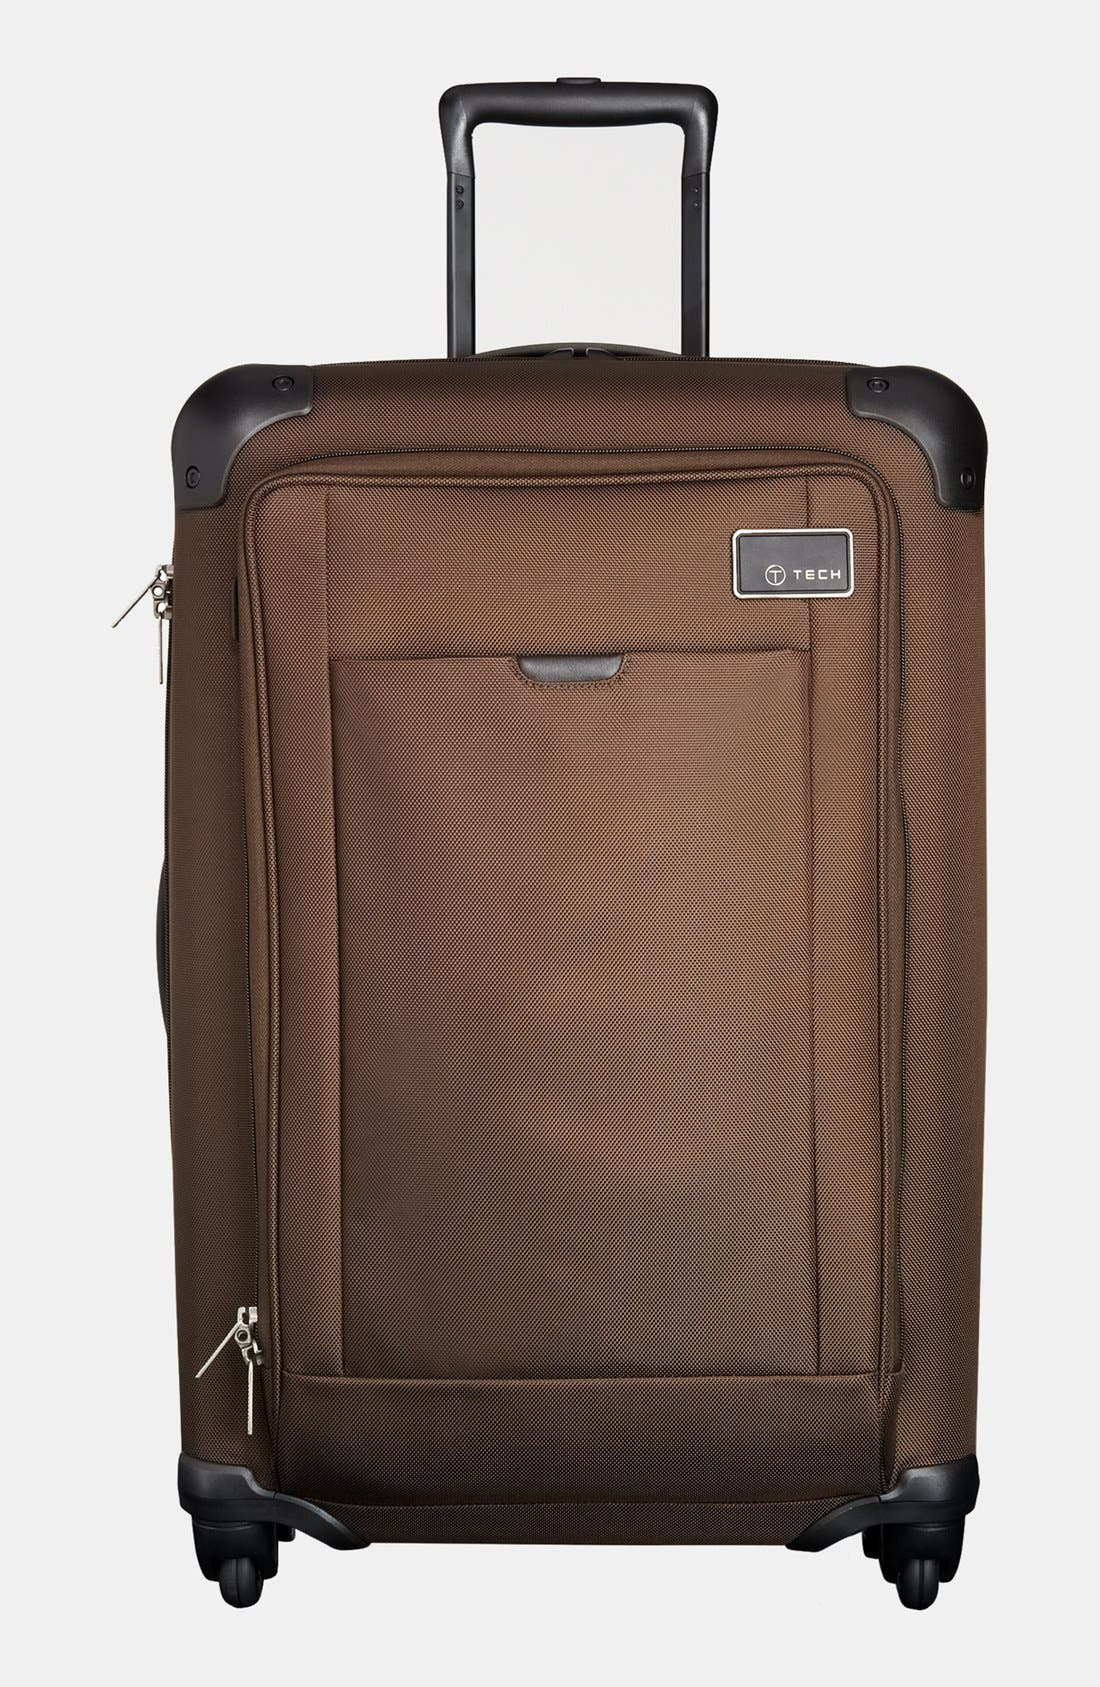 Alternate Image 1 Selected - Tumi 'T-Tech Network' Lightweight 4-Wheeled Medium Trip Packing Case